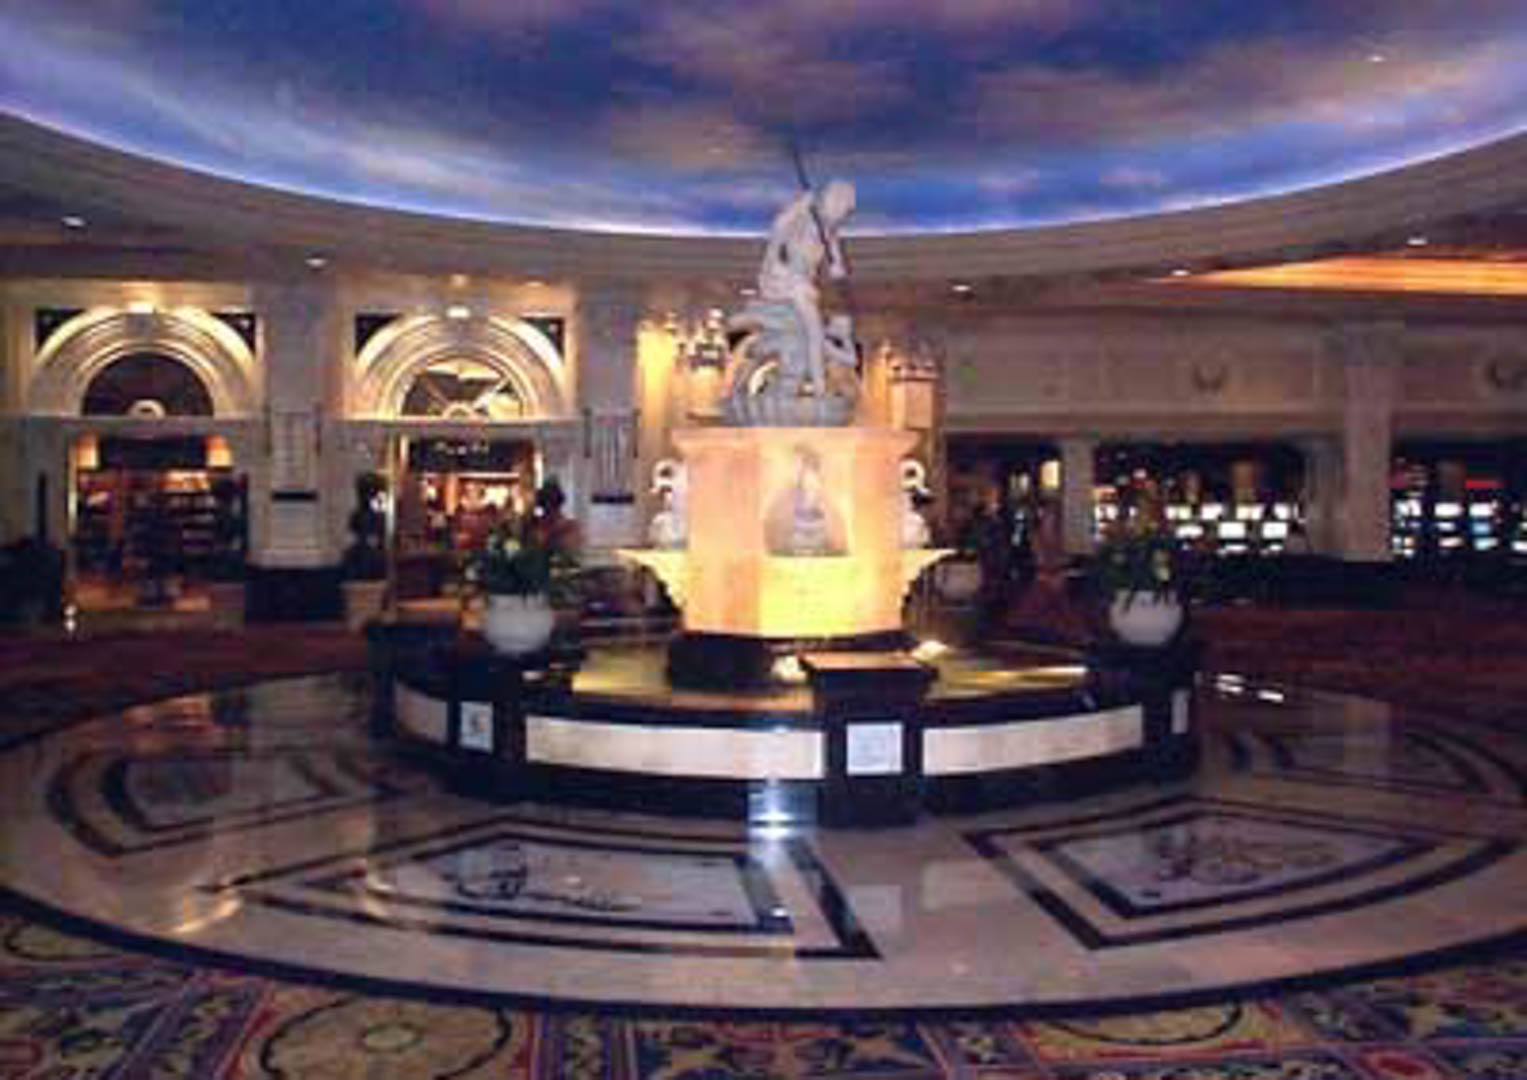 Project:  Caesars Palace Hotel   Location:  Las Vegas, Nevada   Description:  The center piece of 'The Court of Fountains' in Caesars Palace Hotel is a 20 foot diameter fountain made of Spanish marble and Egyptian limestone. Surrounding the fountain is decorative stone paving with waterjet brass inlays.